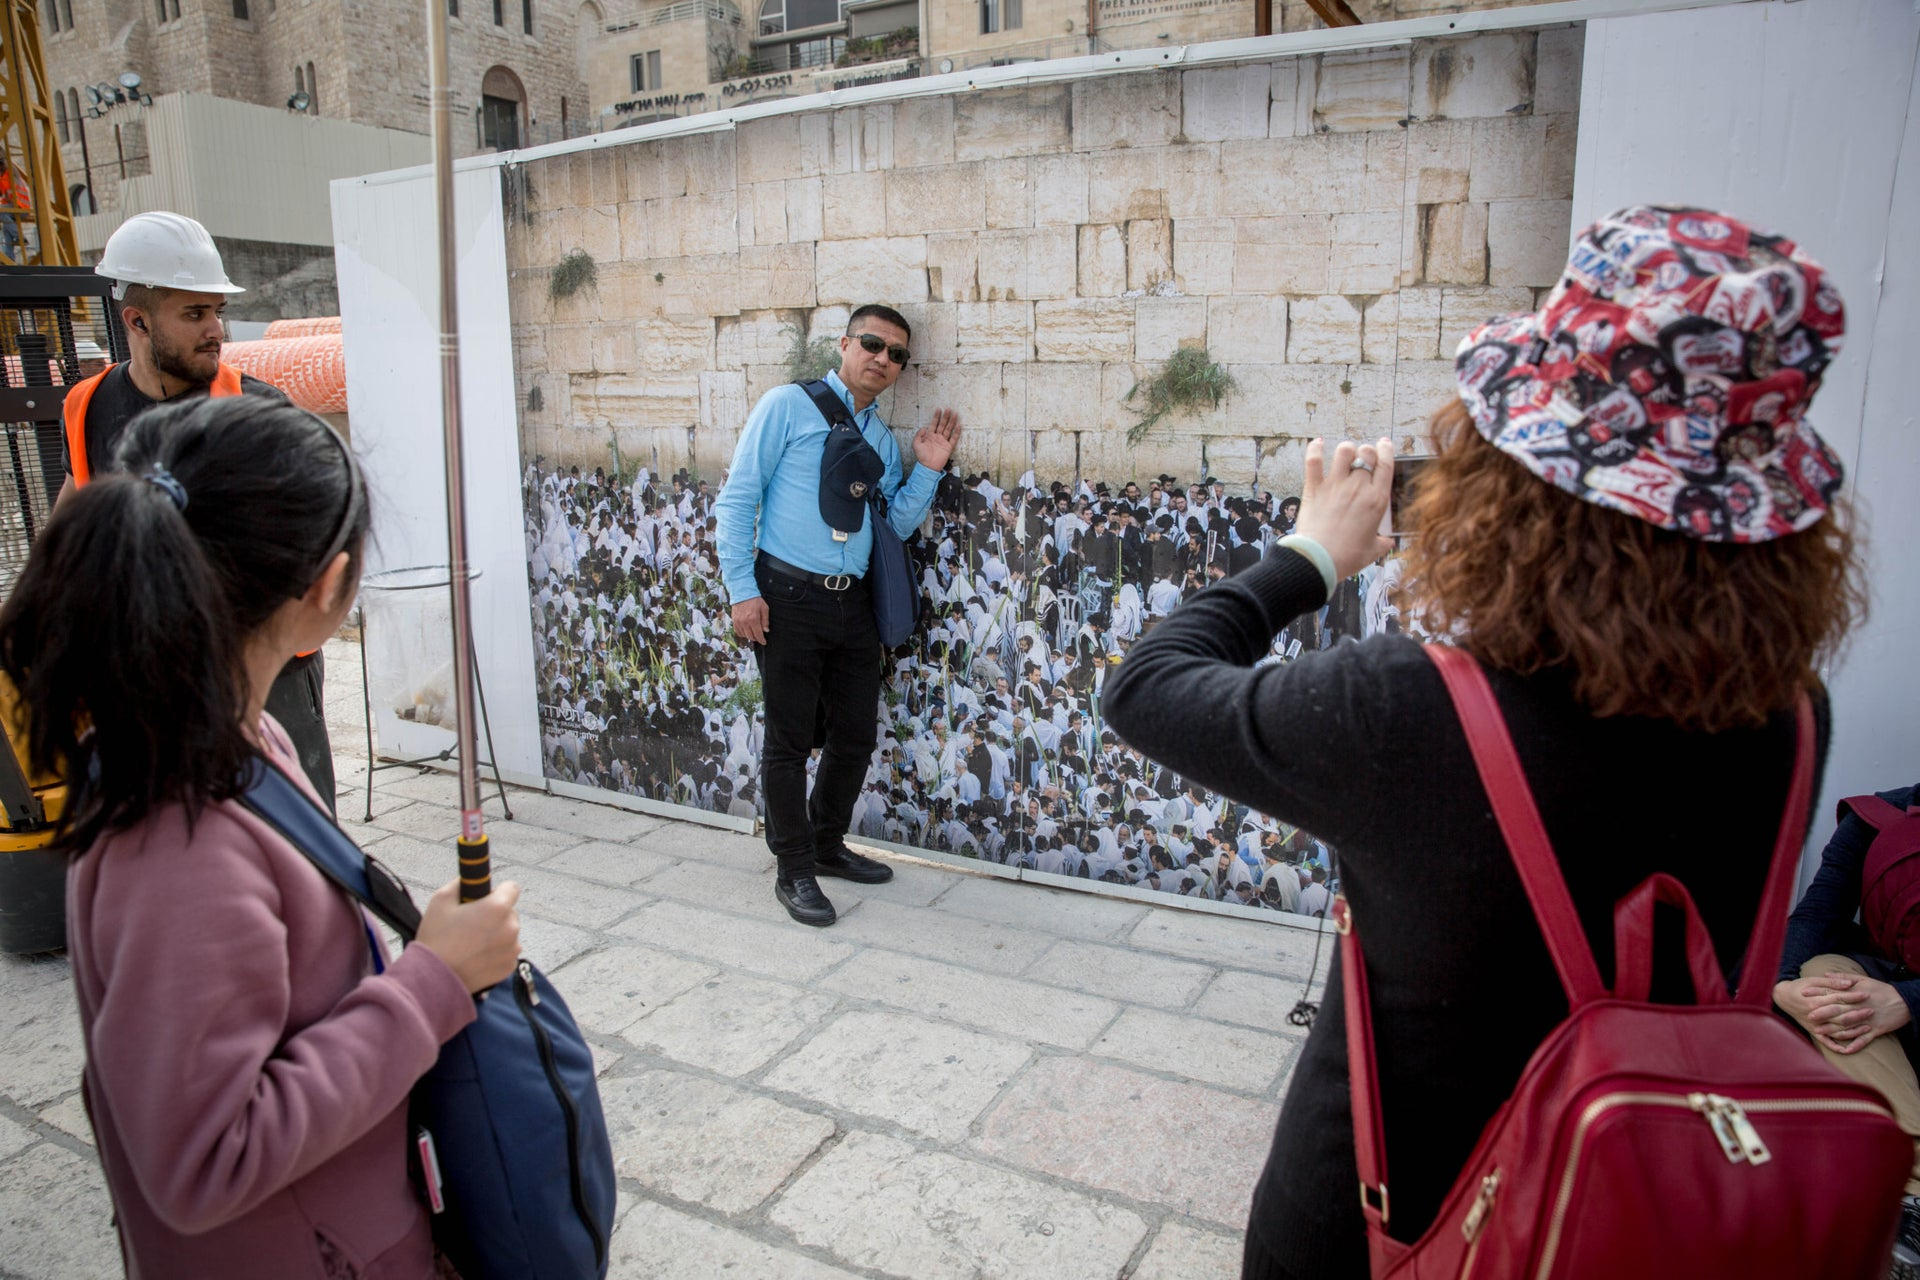 File photo: A man has his picture taken in front of an image of the Western Wall in Jerusalem.